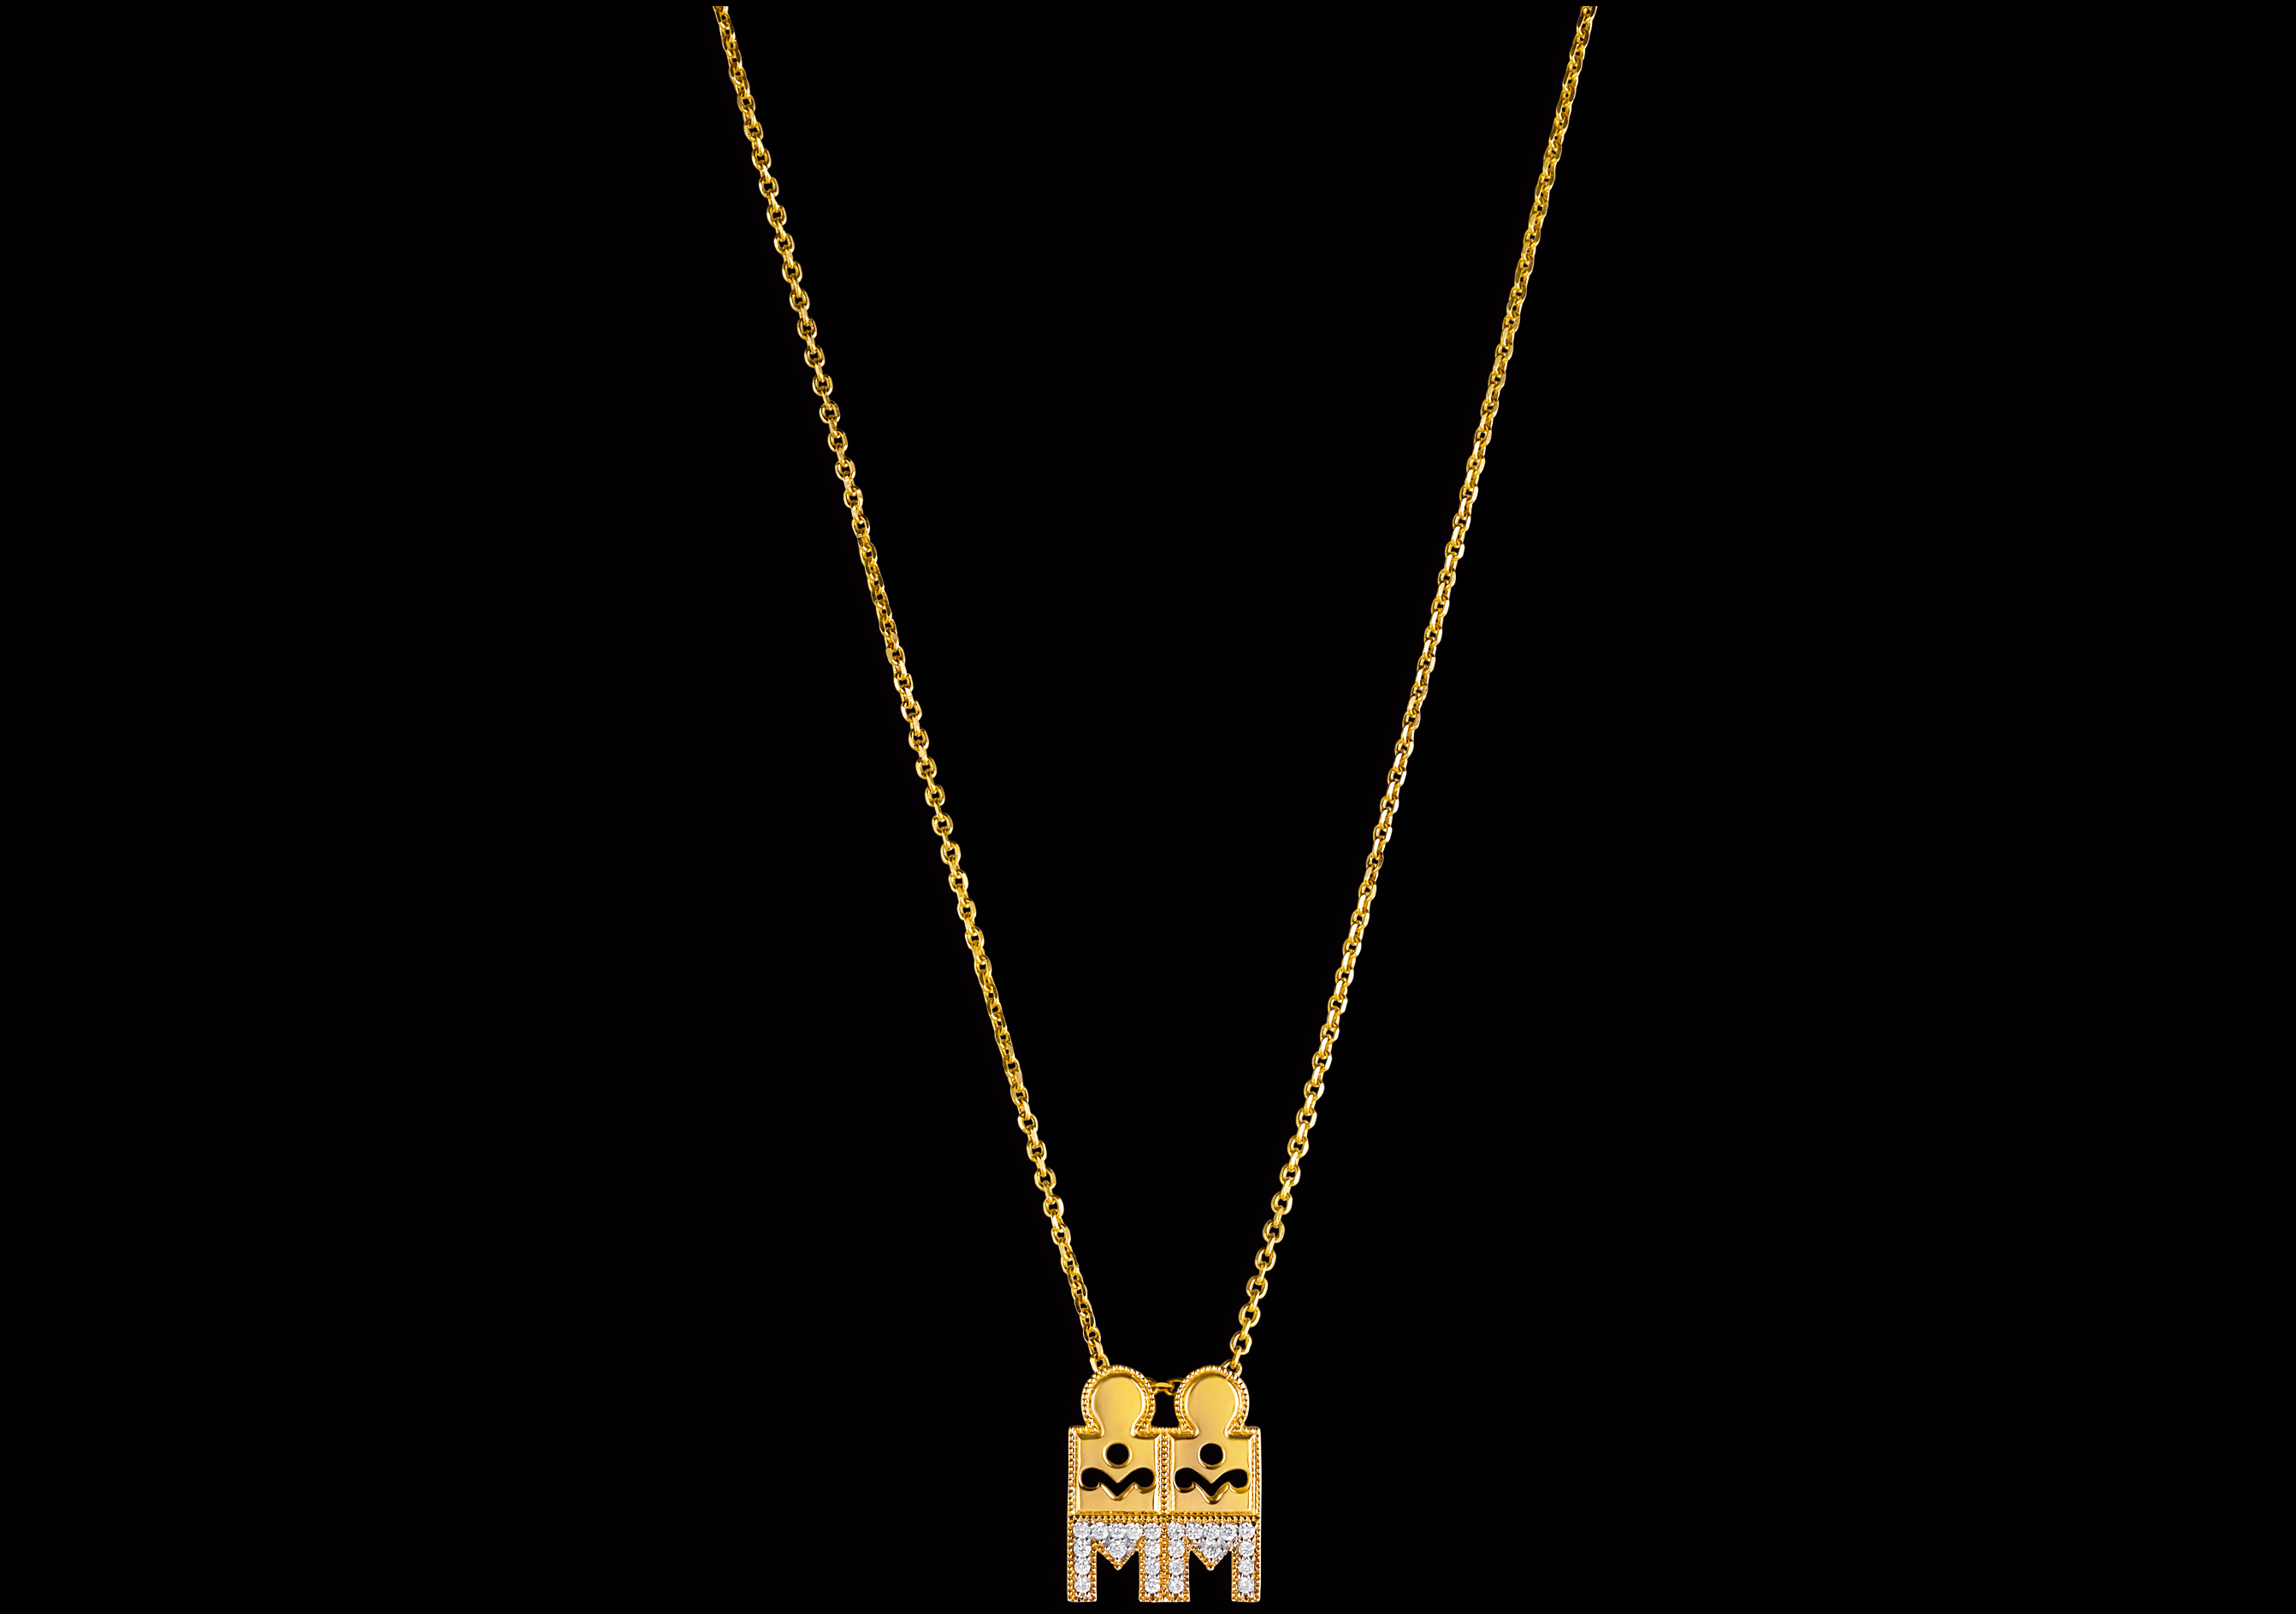 22K Gold Mangalsutra Chain Designs from Tanishq South India Jewels